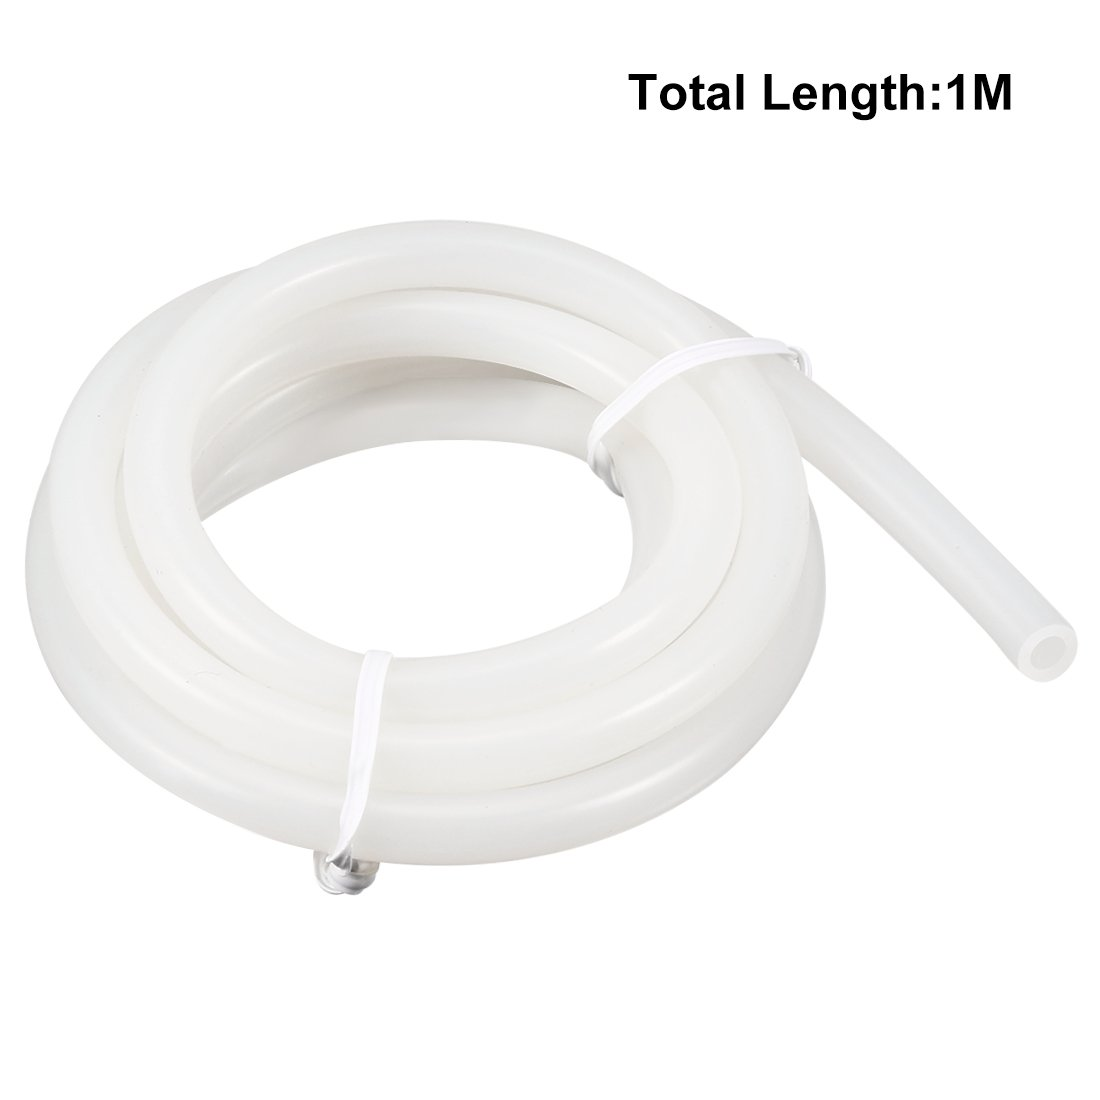 sourcingmap Silicone Tube 6mm ID X 10mm OD 3.3 Flexible Silicone Rubber Tubing Water Air Hose Pipe Translucent for Pump Transfer